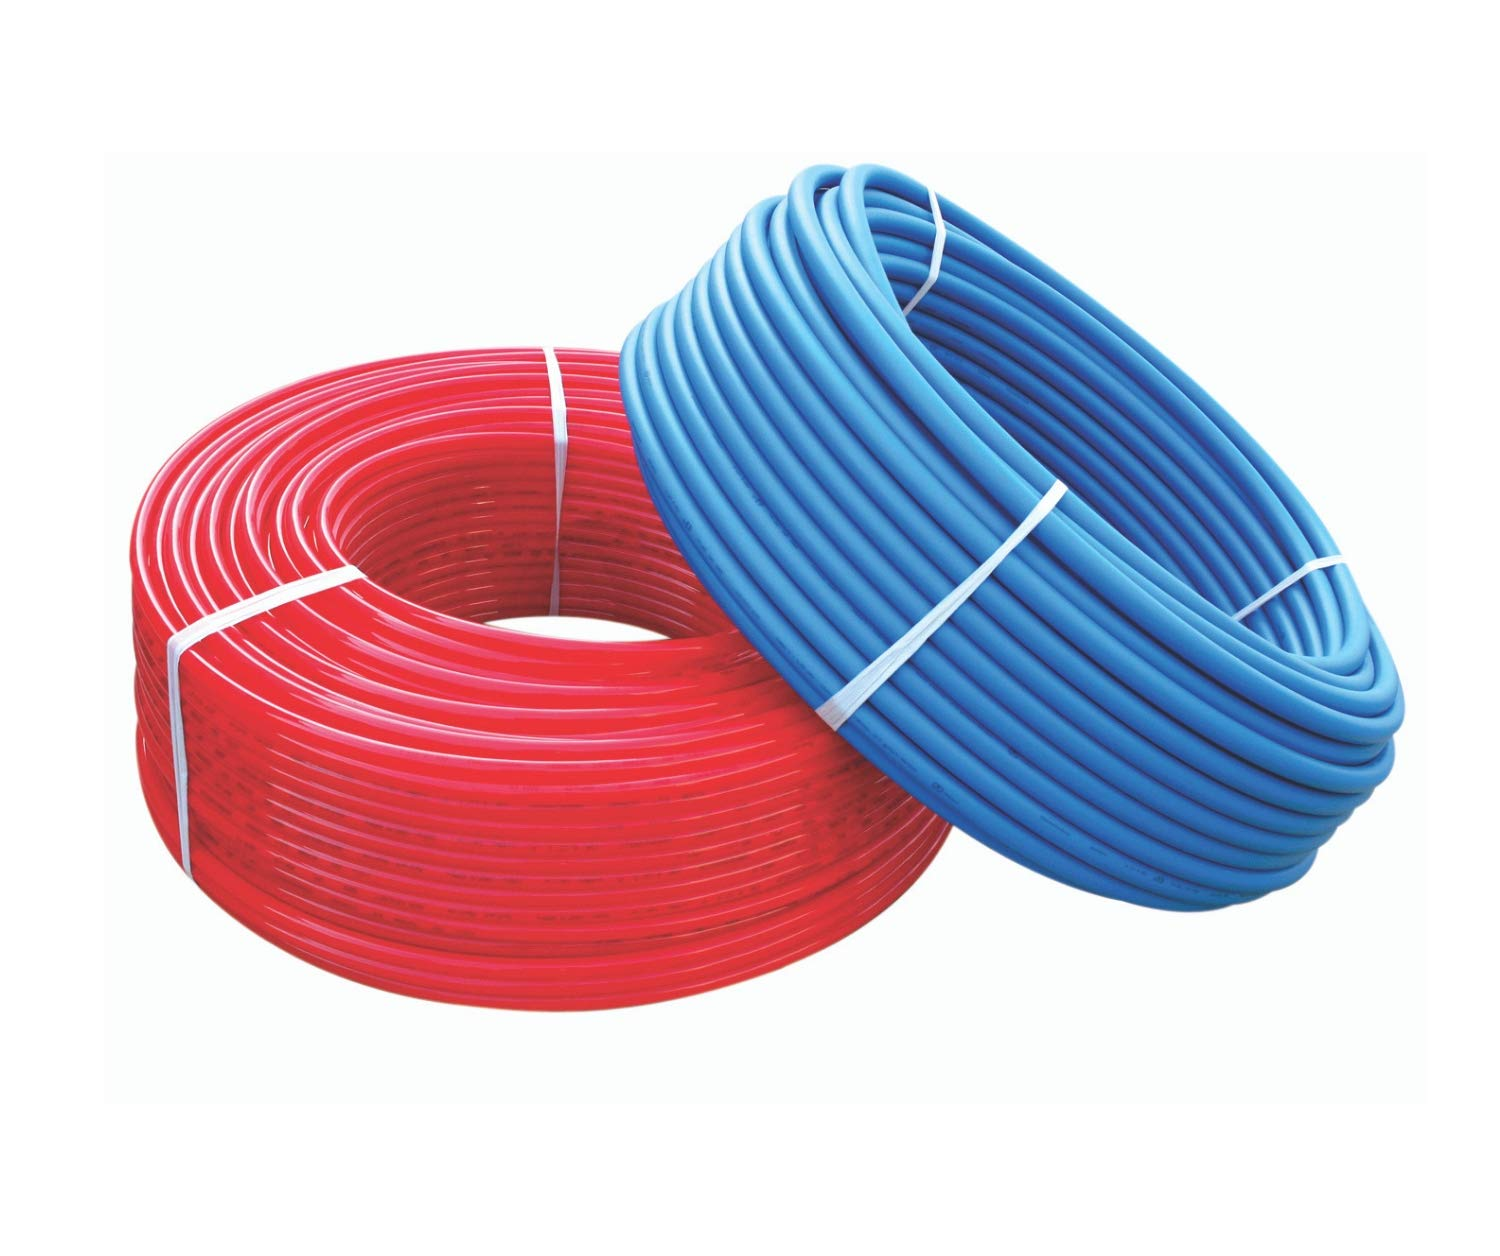 PEX Tubing B Pipe 1/2'' 300 Feet Red 300' Blue Water Polyethylene Flexible Pipes Non Oxygen Barrier Potable Tubes Hot Cold PEX-B Expandable Plastic 1/2 Inch Crimp Hose by CMI Inc